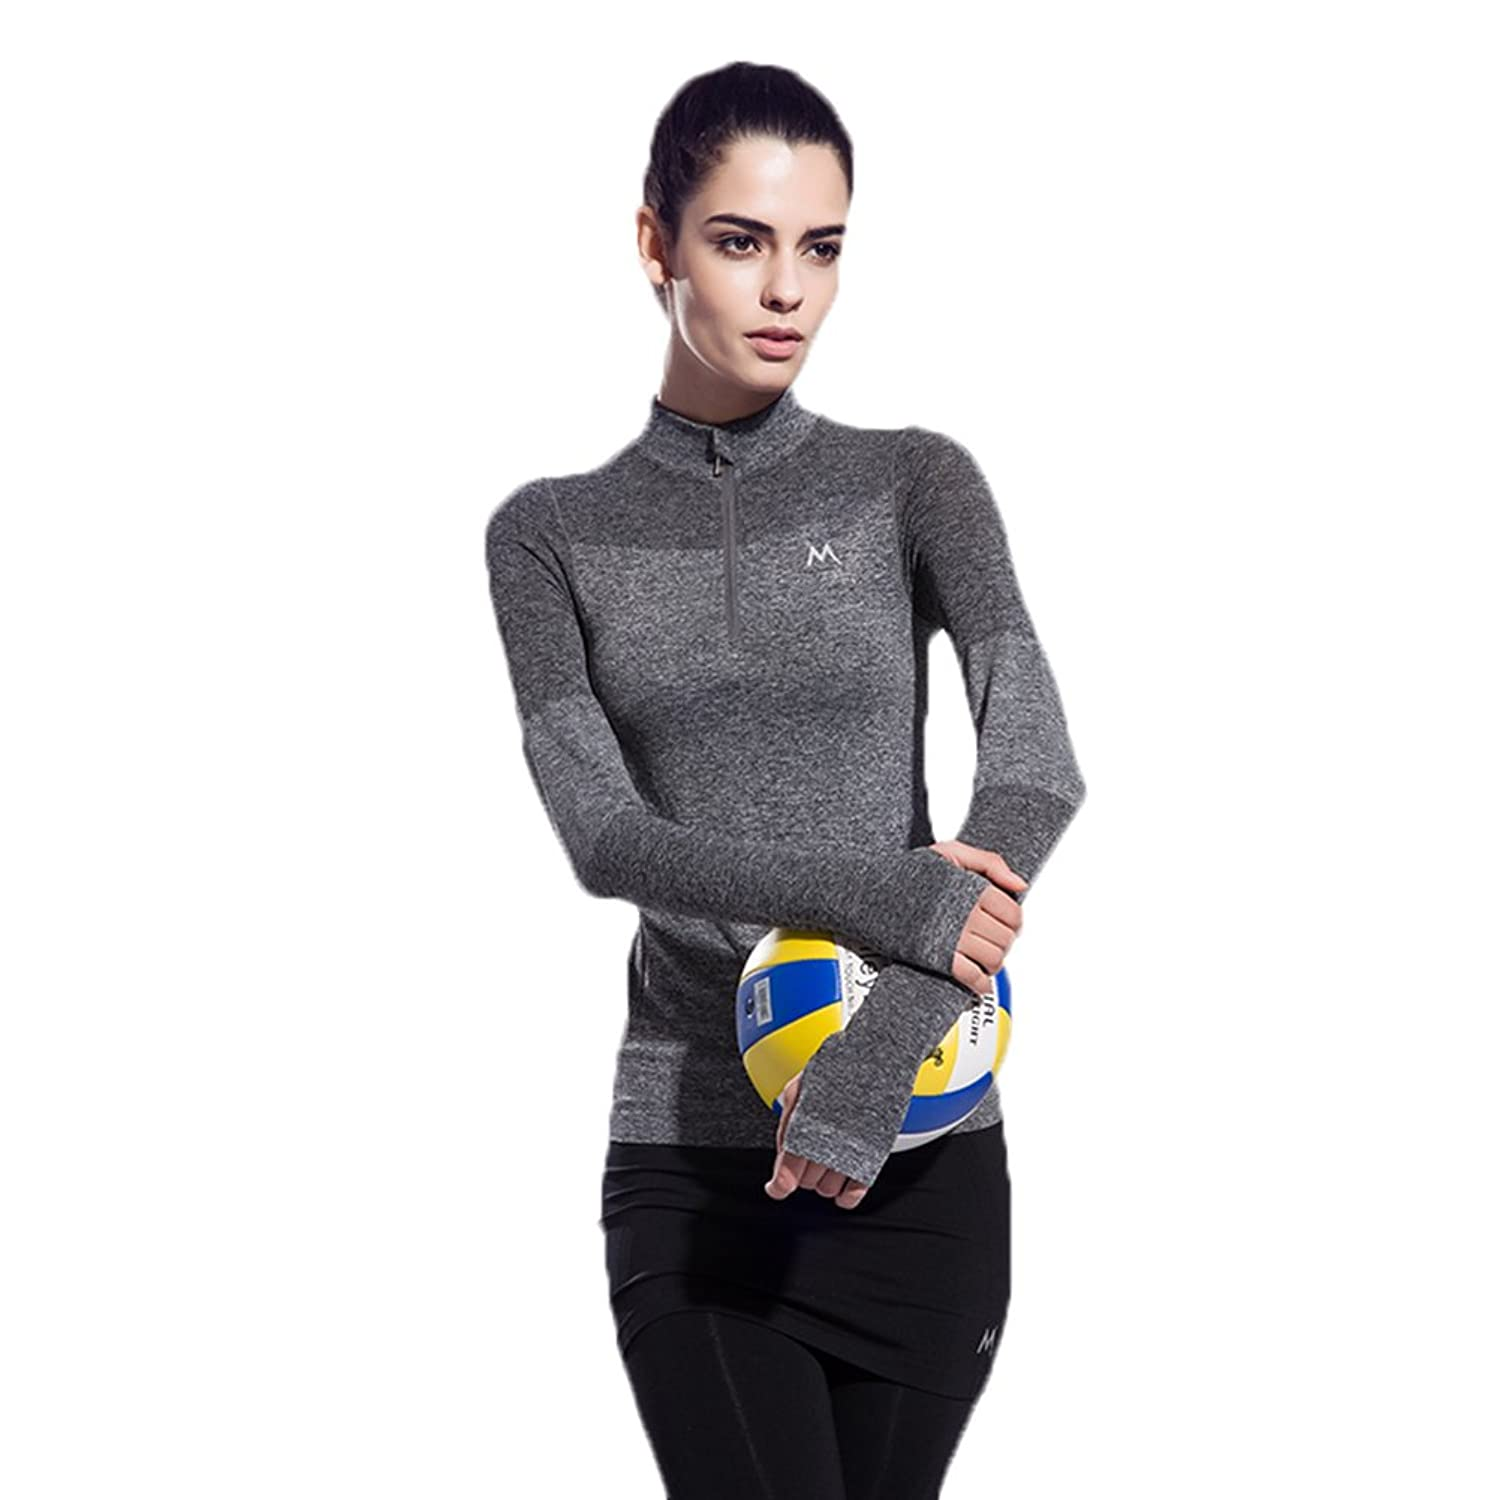 Women's Zipper Long Sleeve Yoga Sweatshirts Workout Fast Dray Tops Winter